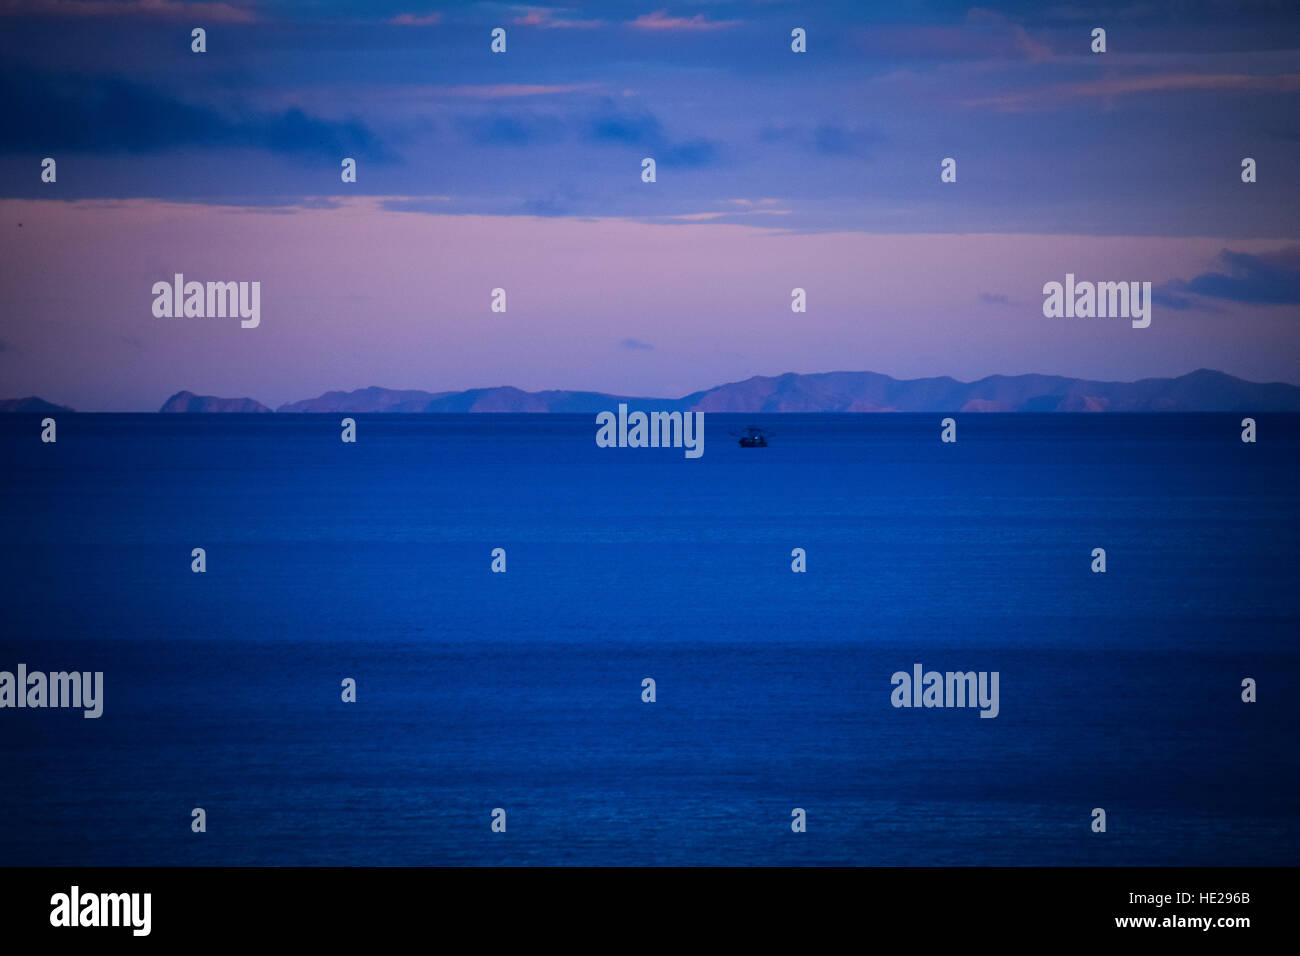 Scenery over the Pacific Ocean of Guanacaste on the horizon at dusk - Stock Image